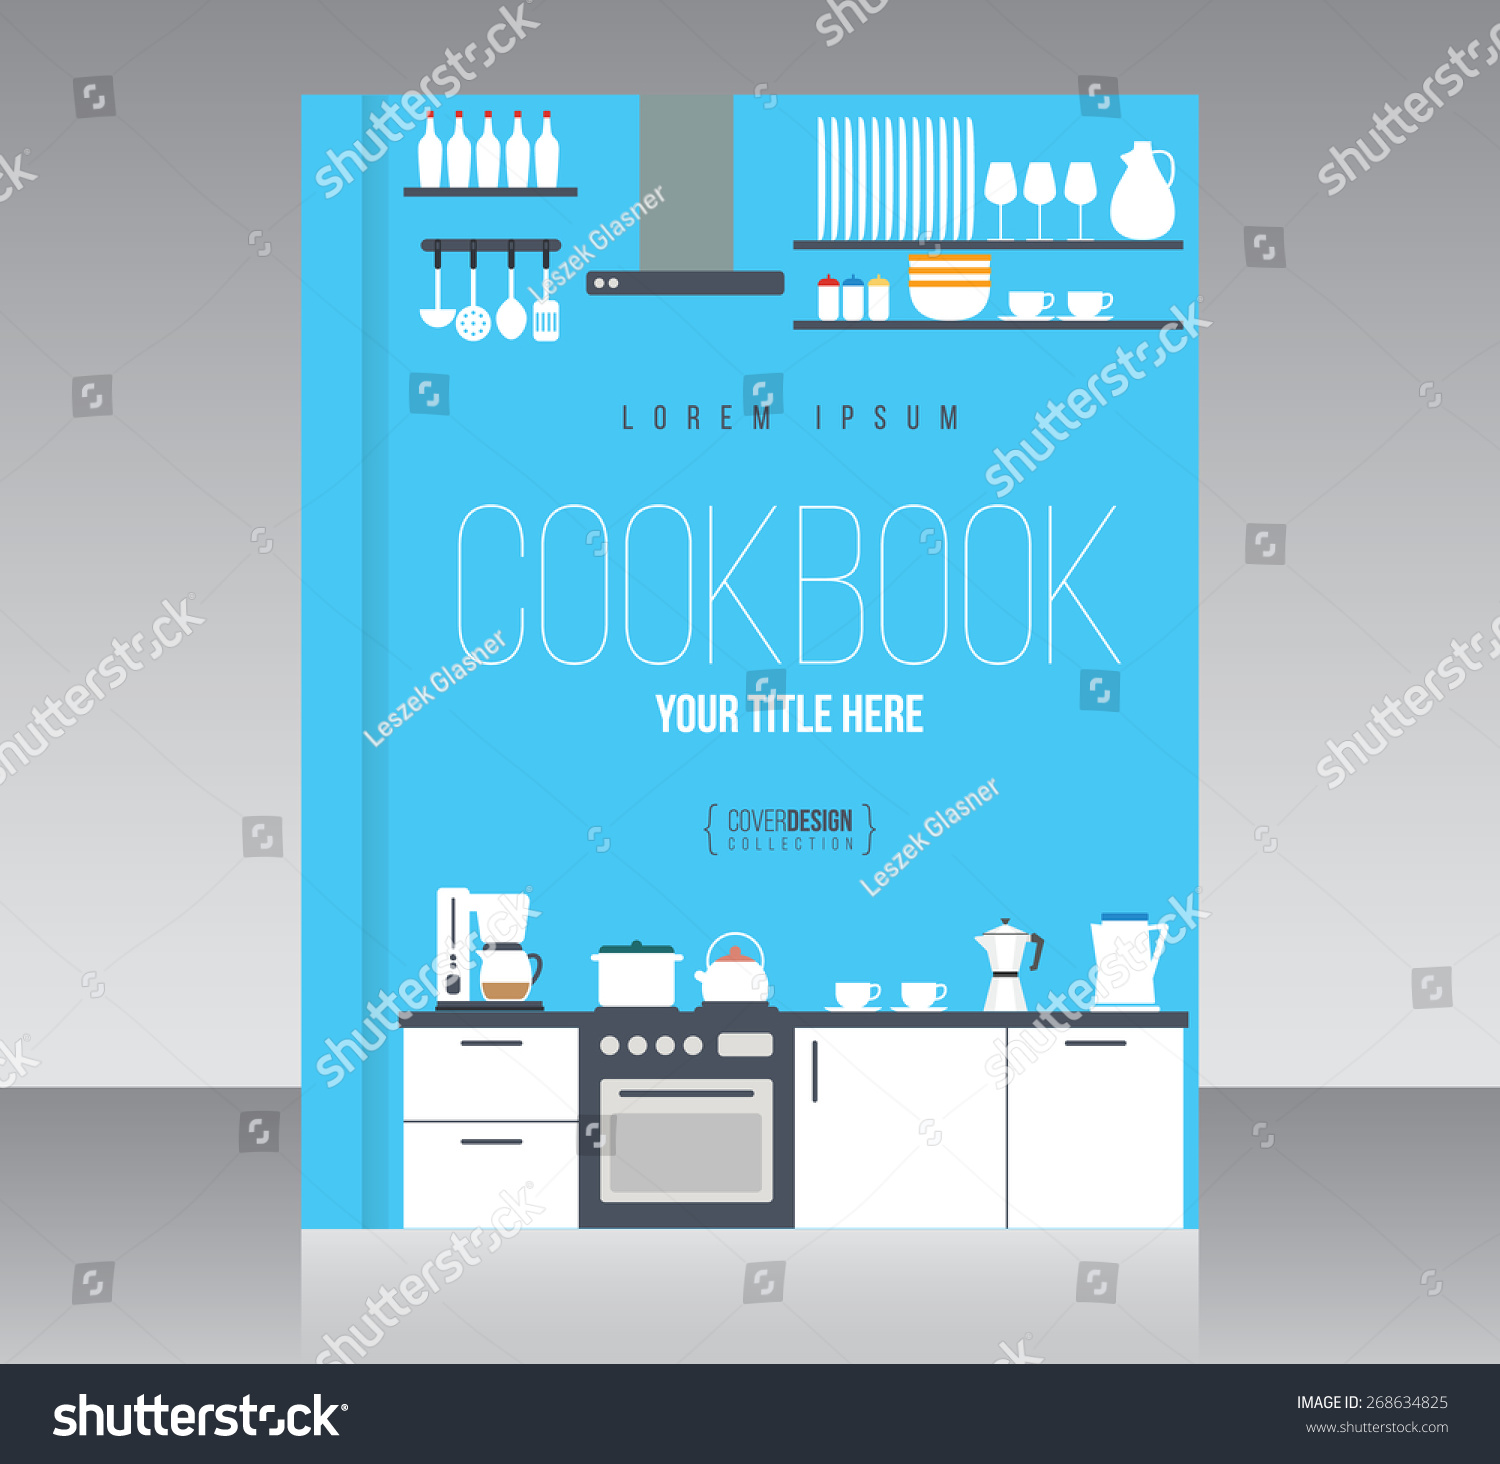 cookbook cover design vector template minimal stock vector royalty